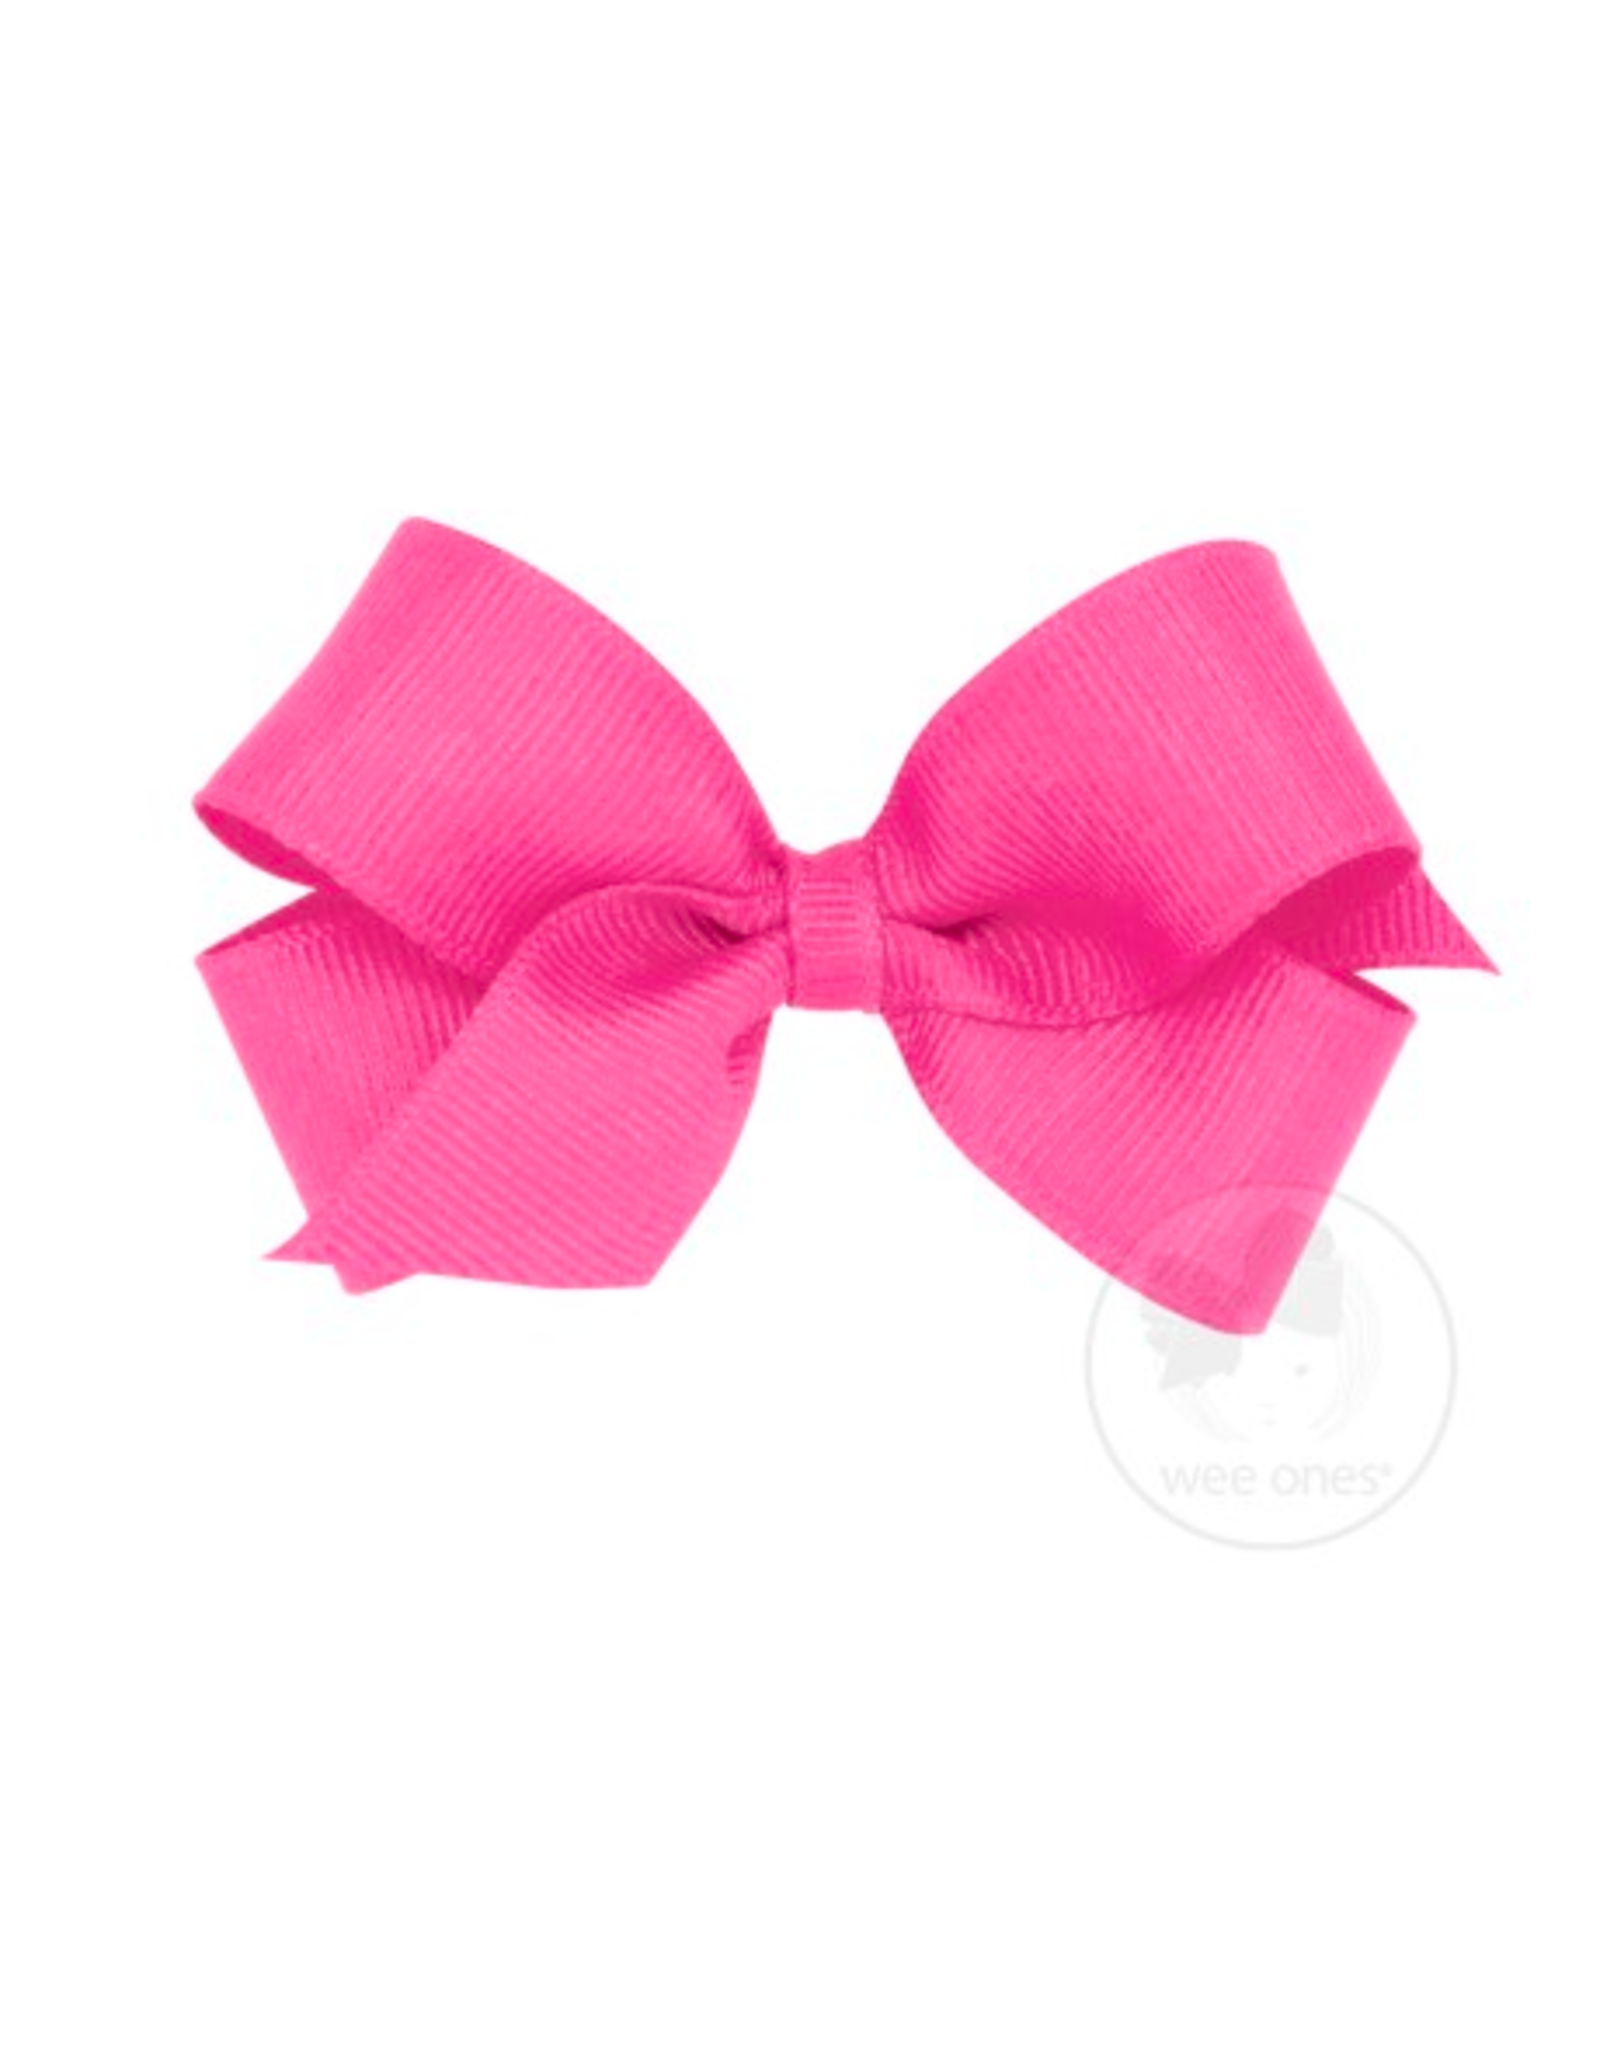 Wee Ones Wee Ones Mini Bow in Hot Pink